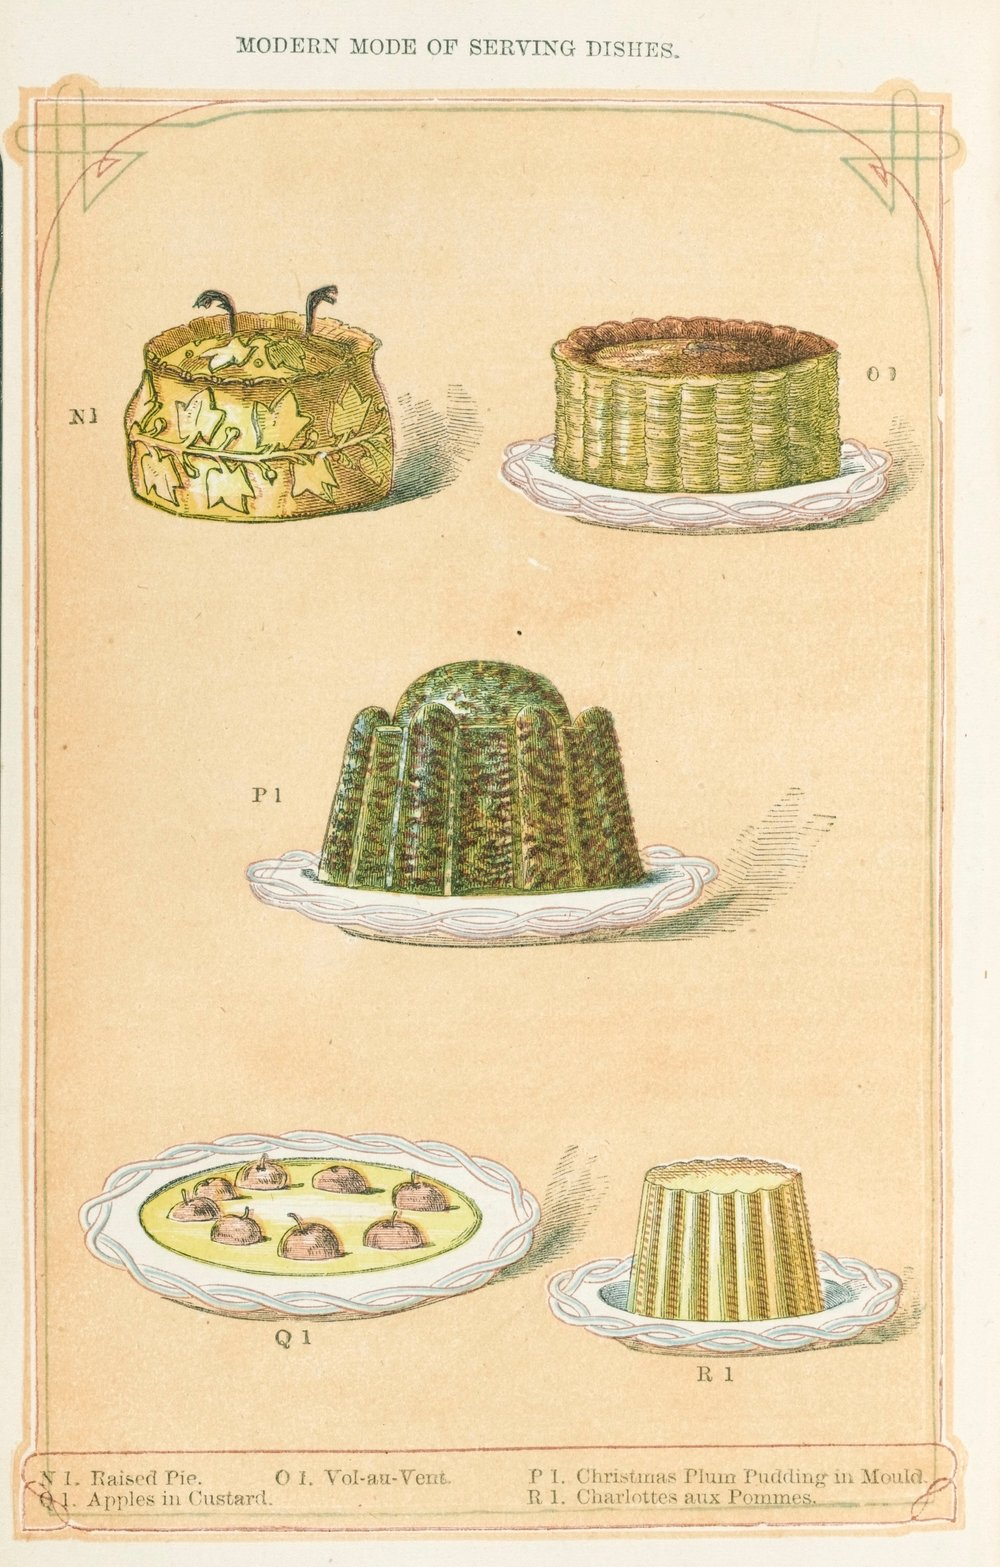 From Mrs Beeton's Book of Household Management, in the Wellcome Collection. A selection of puddings: N1) Raised Pie O1) Vol-au-vent P1) Christmas Plum Pudding in Mould Q1)Apples in Custard R1)Charlottes aux Pommes